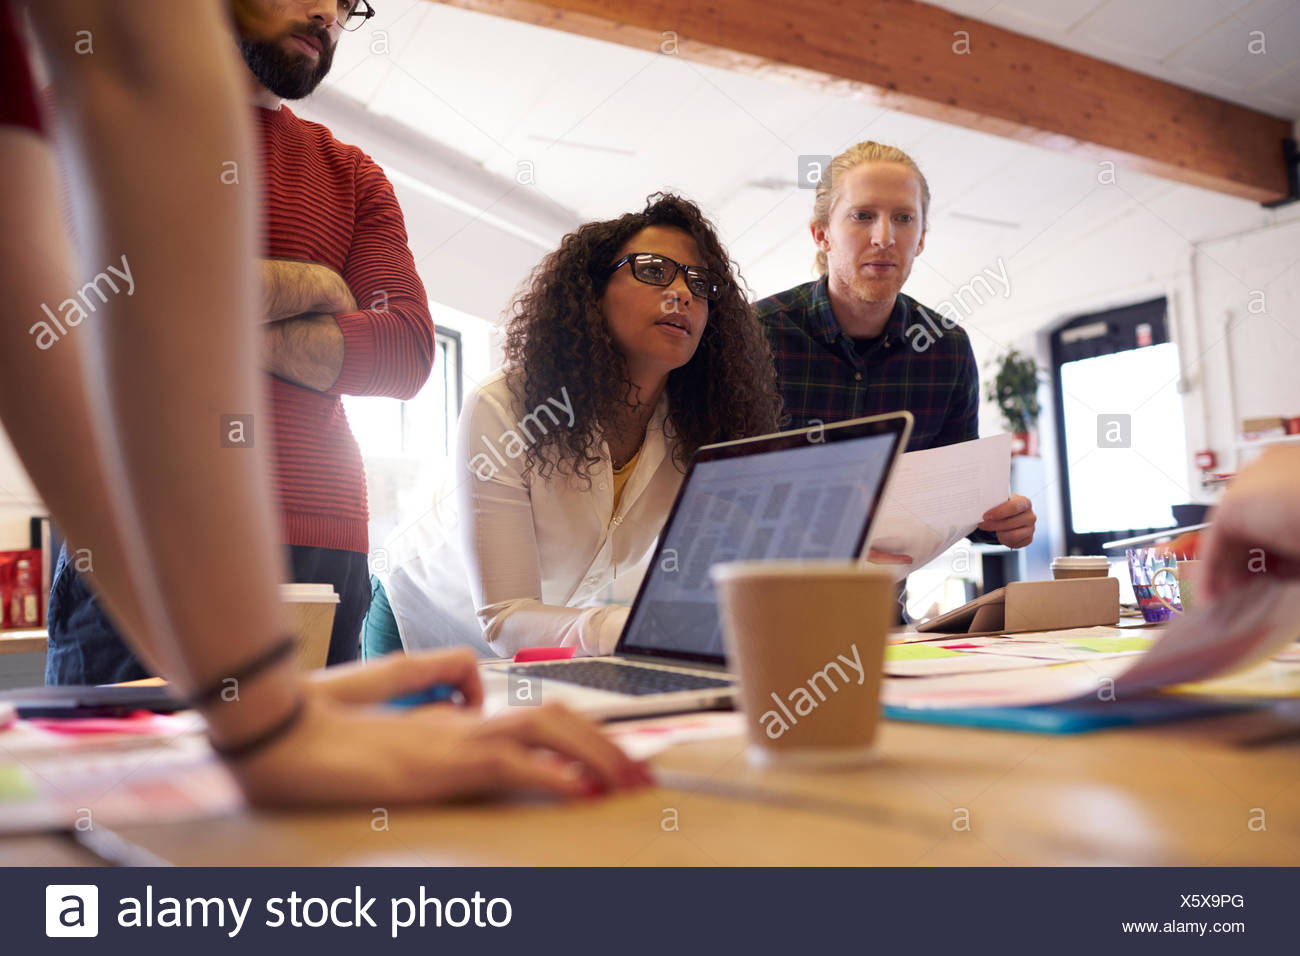 Low Angle View Of Creative Brainstorming Meeting In Office - Stock Image